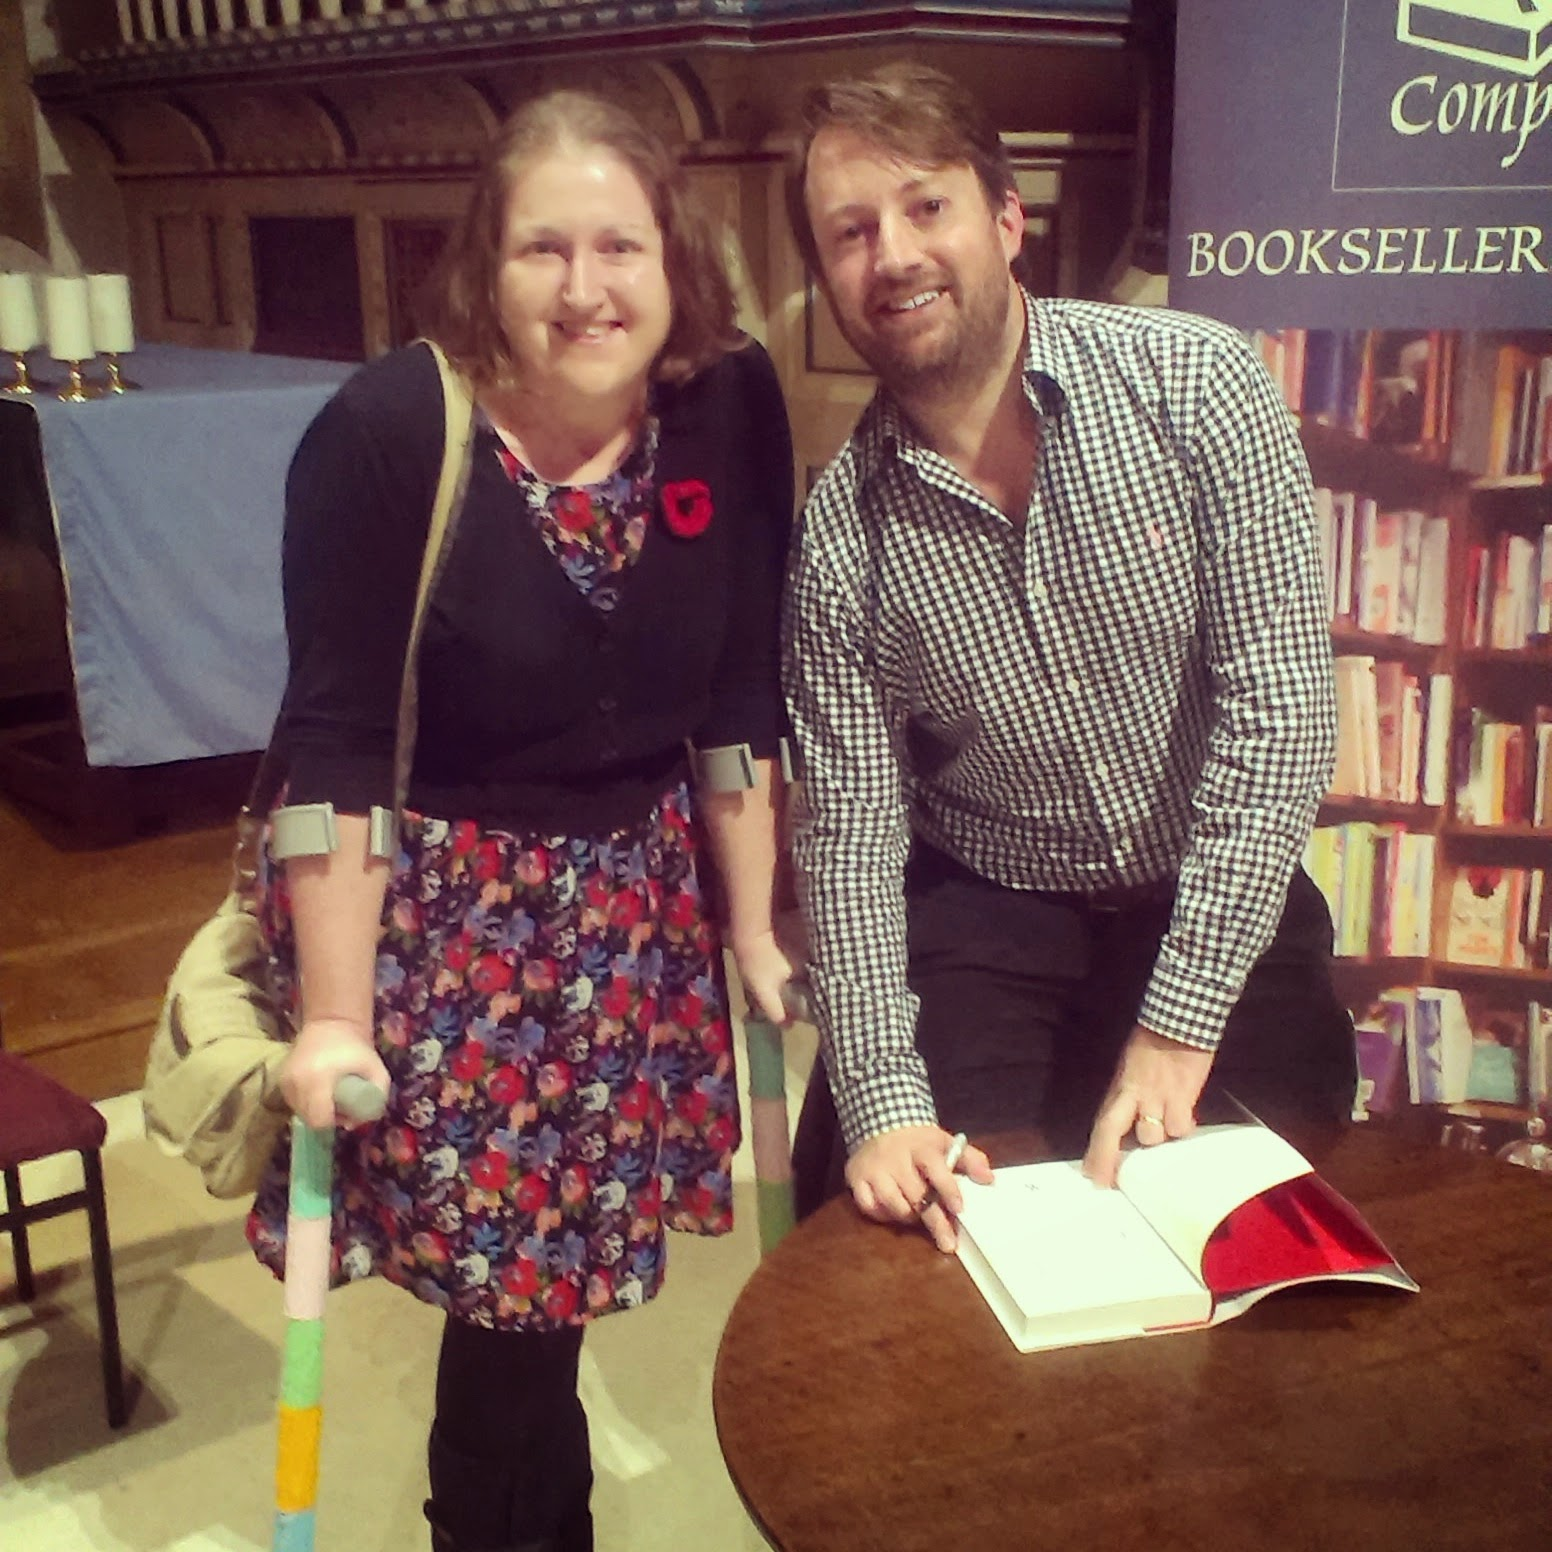 Duck meeting David Mitchell